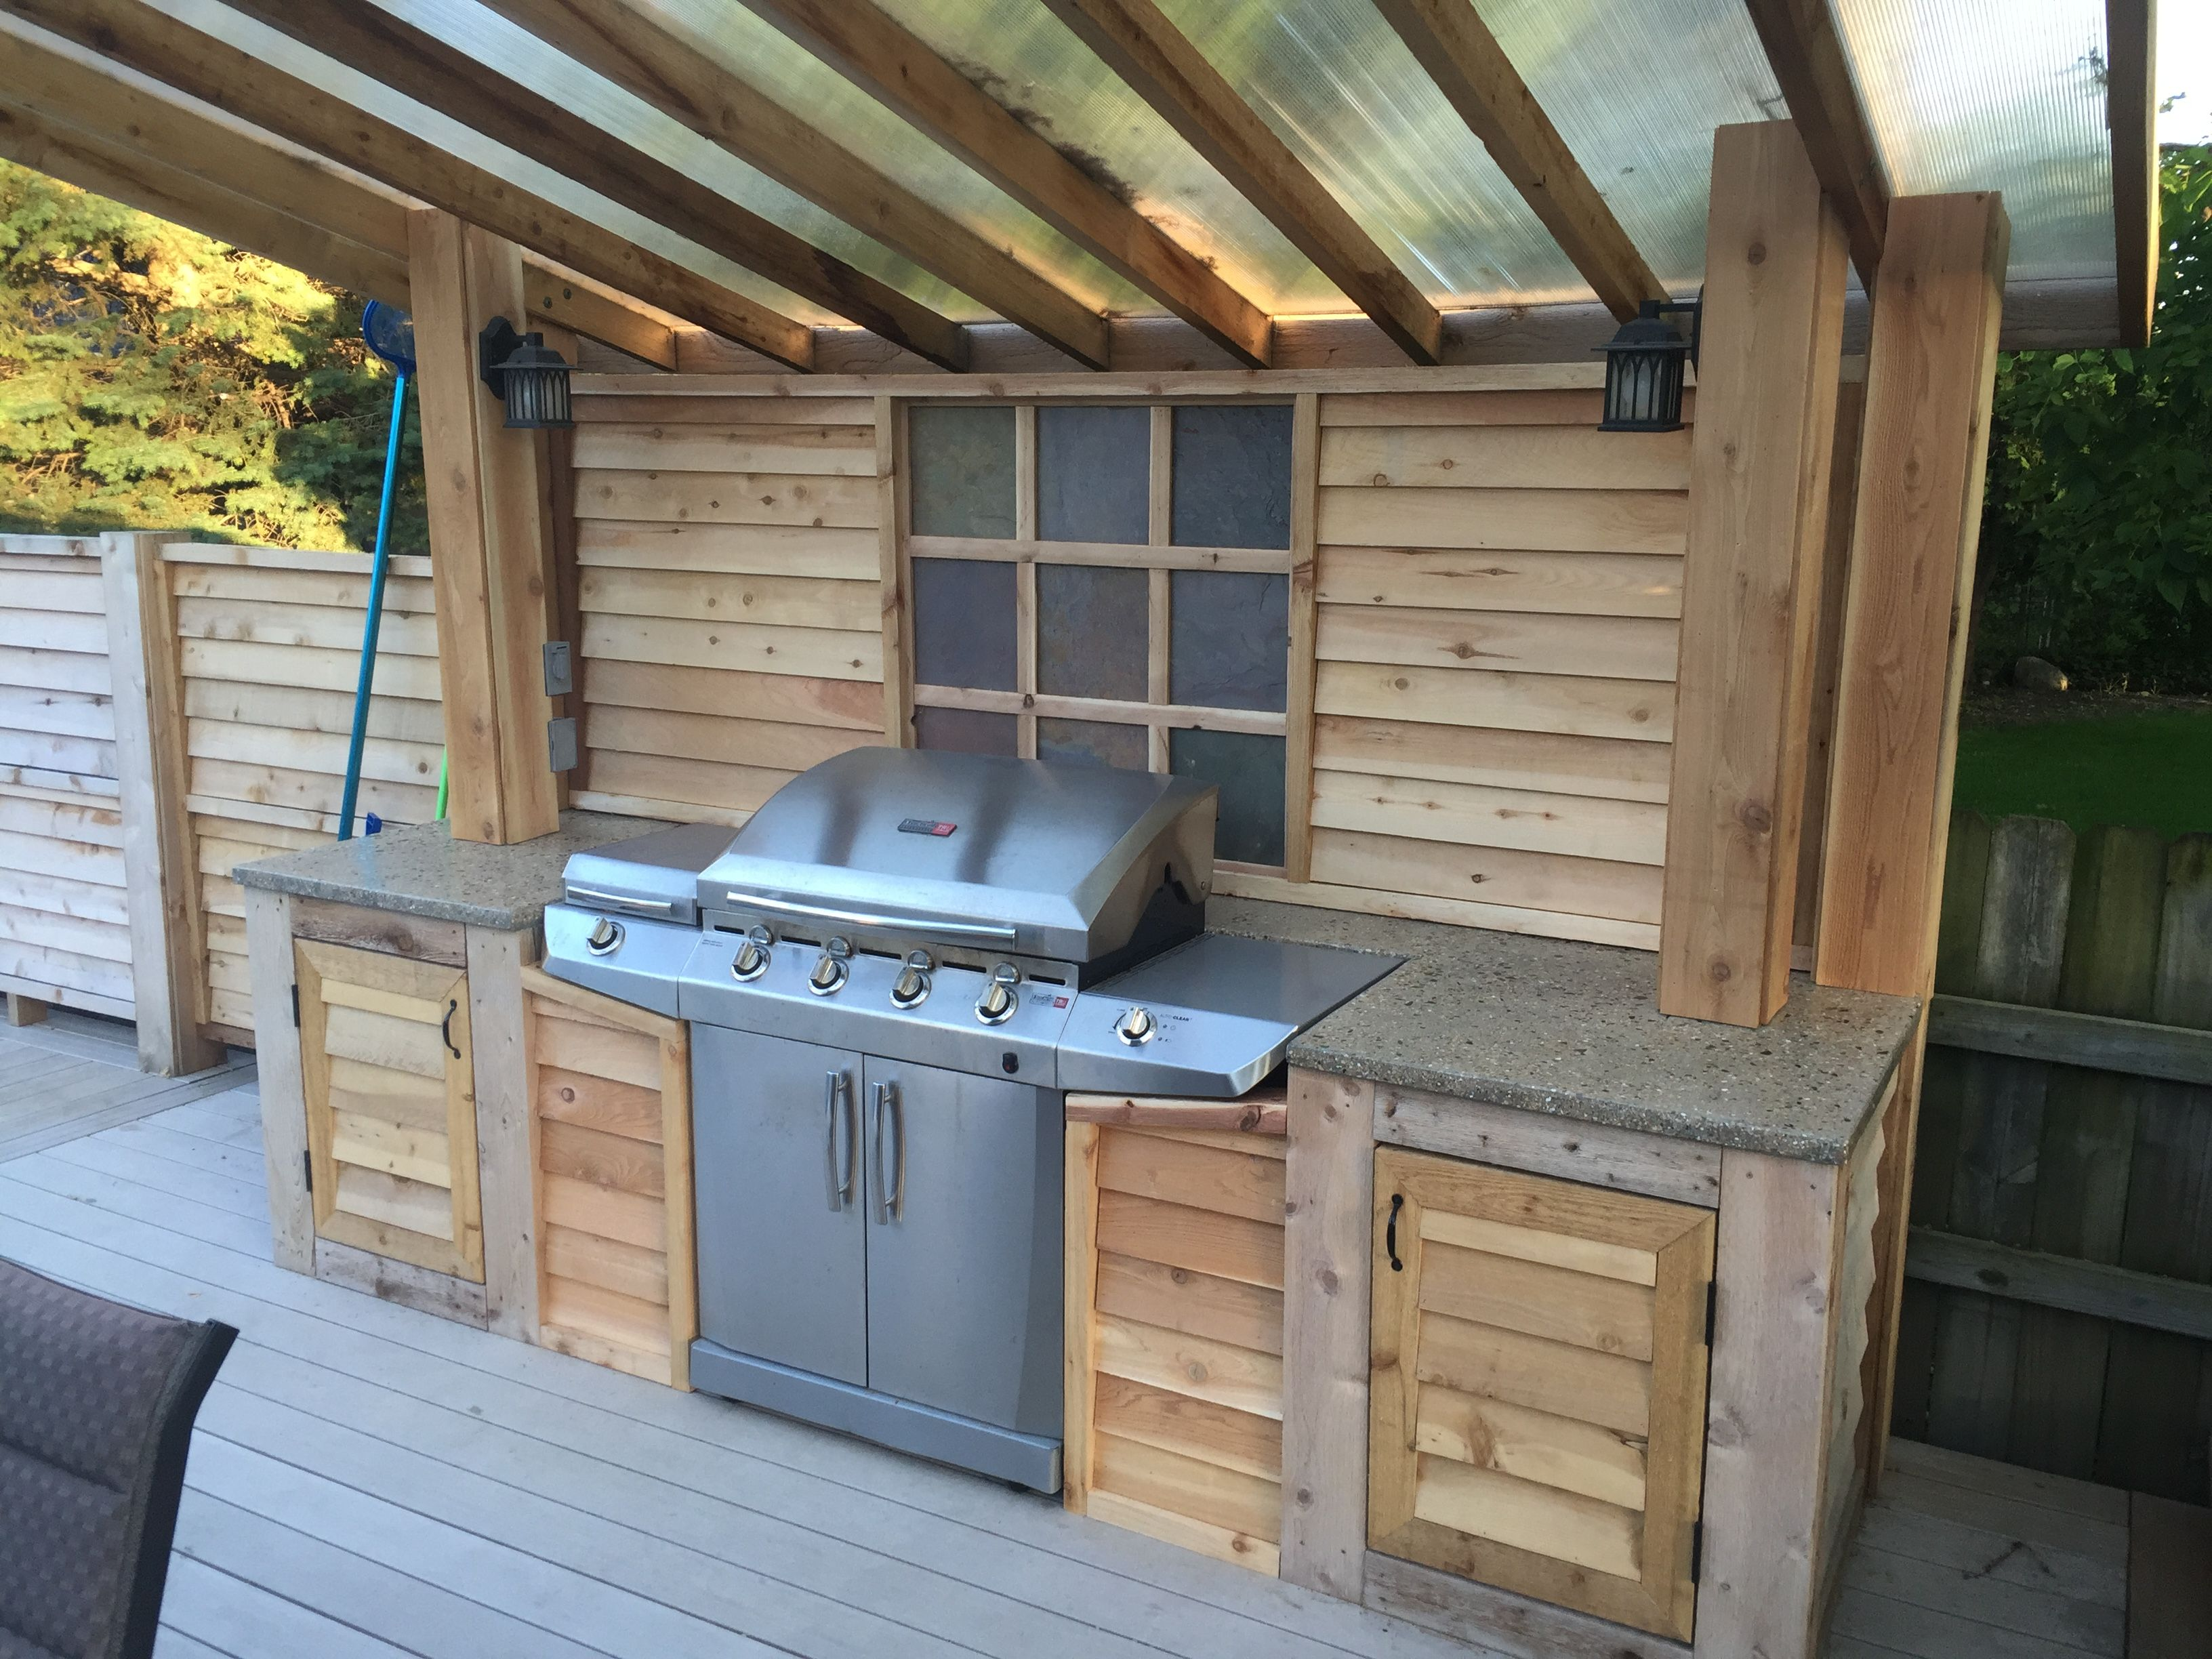 Grill Station | Outdoor kitchen design layout, Outdoor ... on Patio Grill Station id=23485